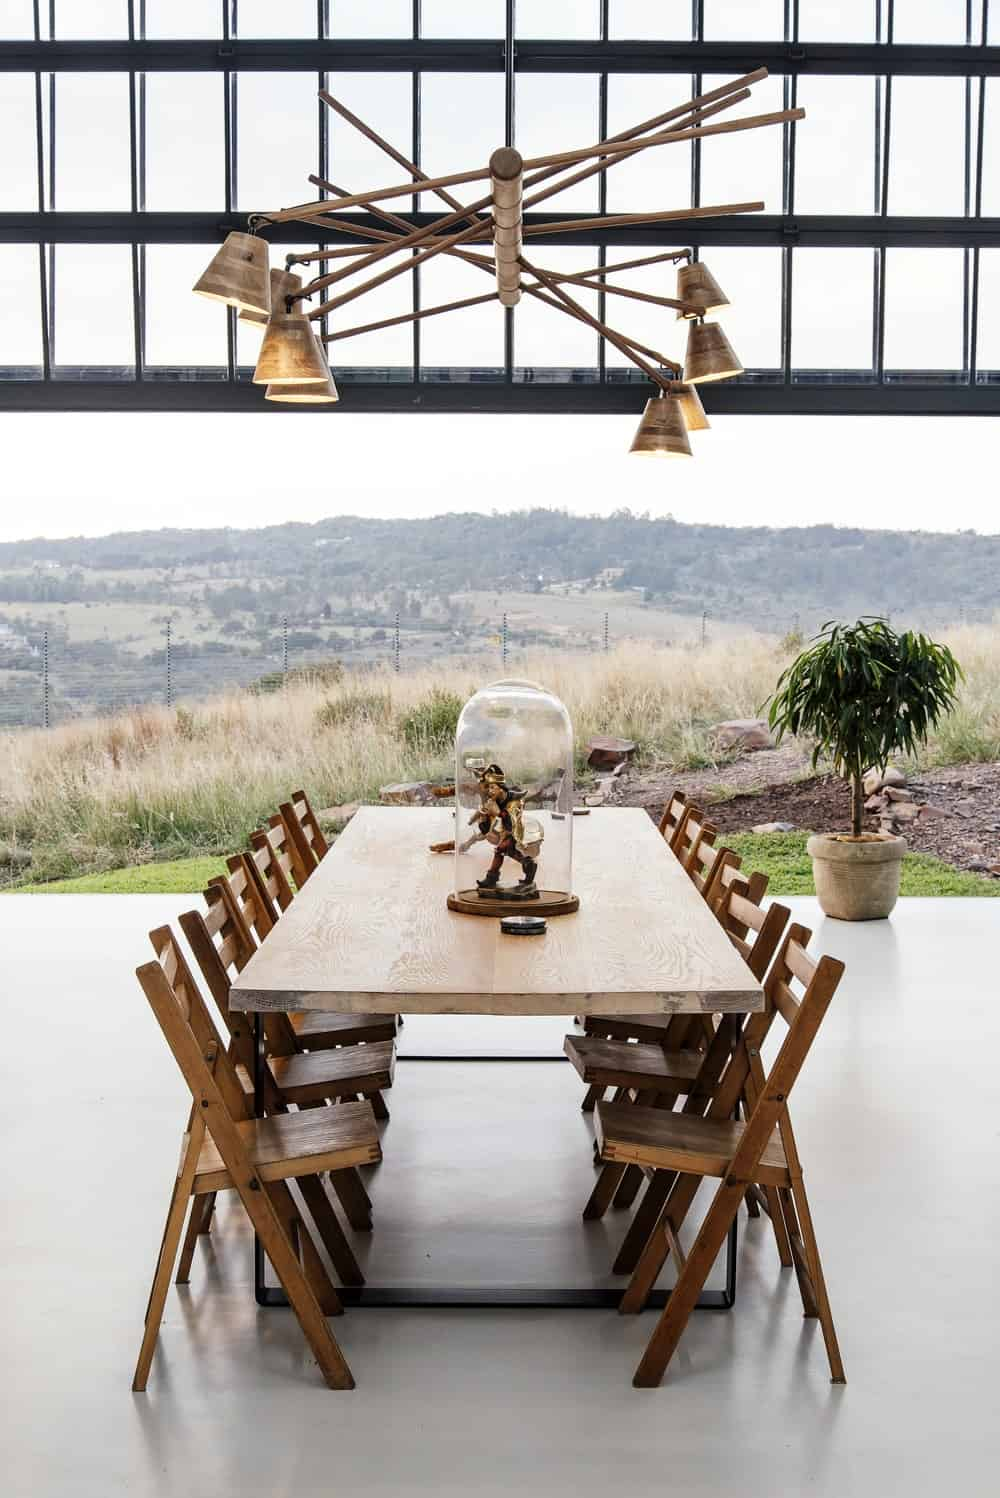 Wooden dining set illuminated by contemporary chandelier in The Conservatory designed by Nadine Engelbrecht.